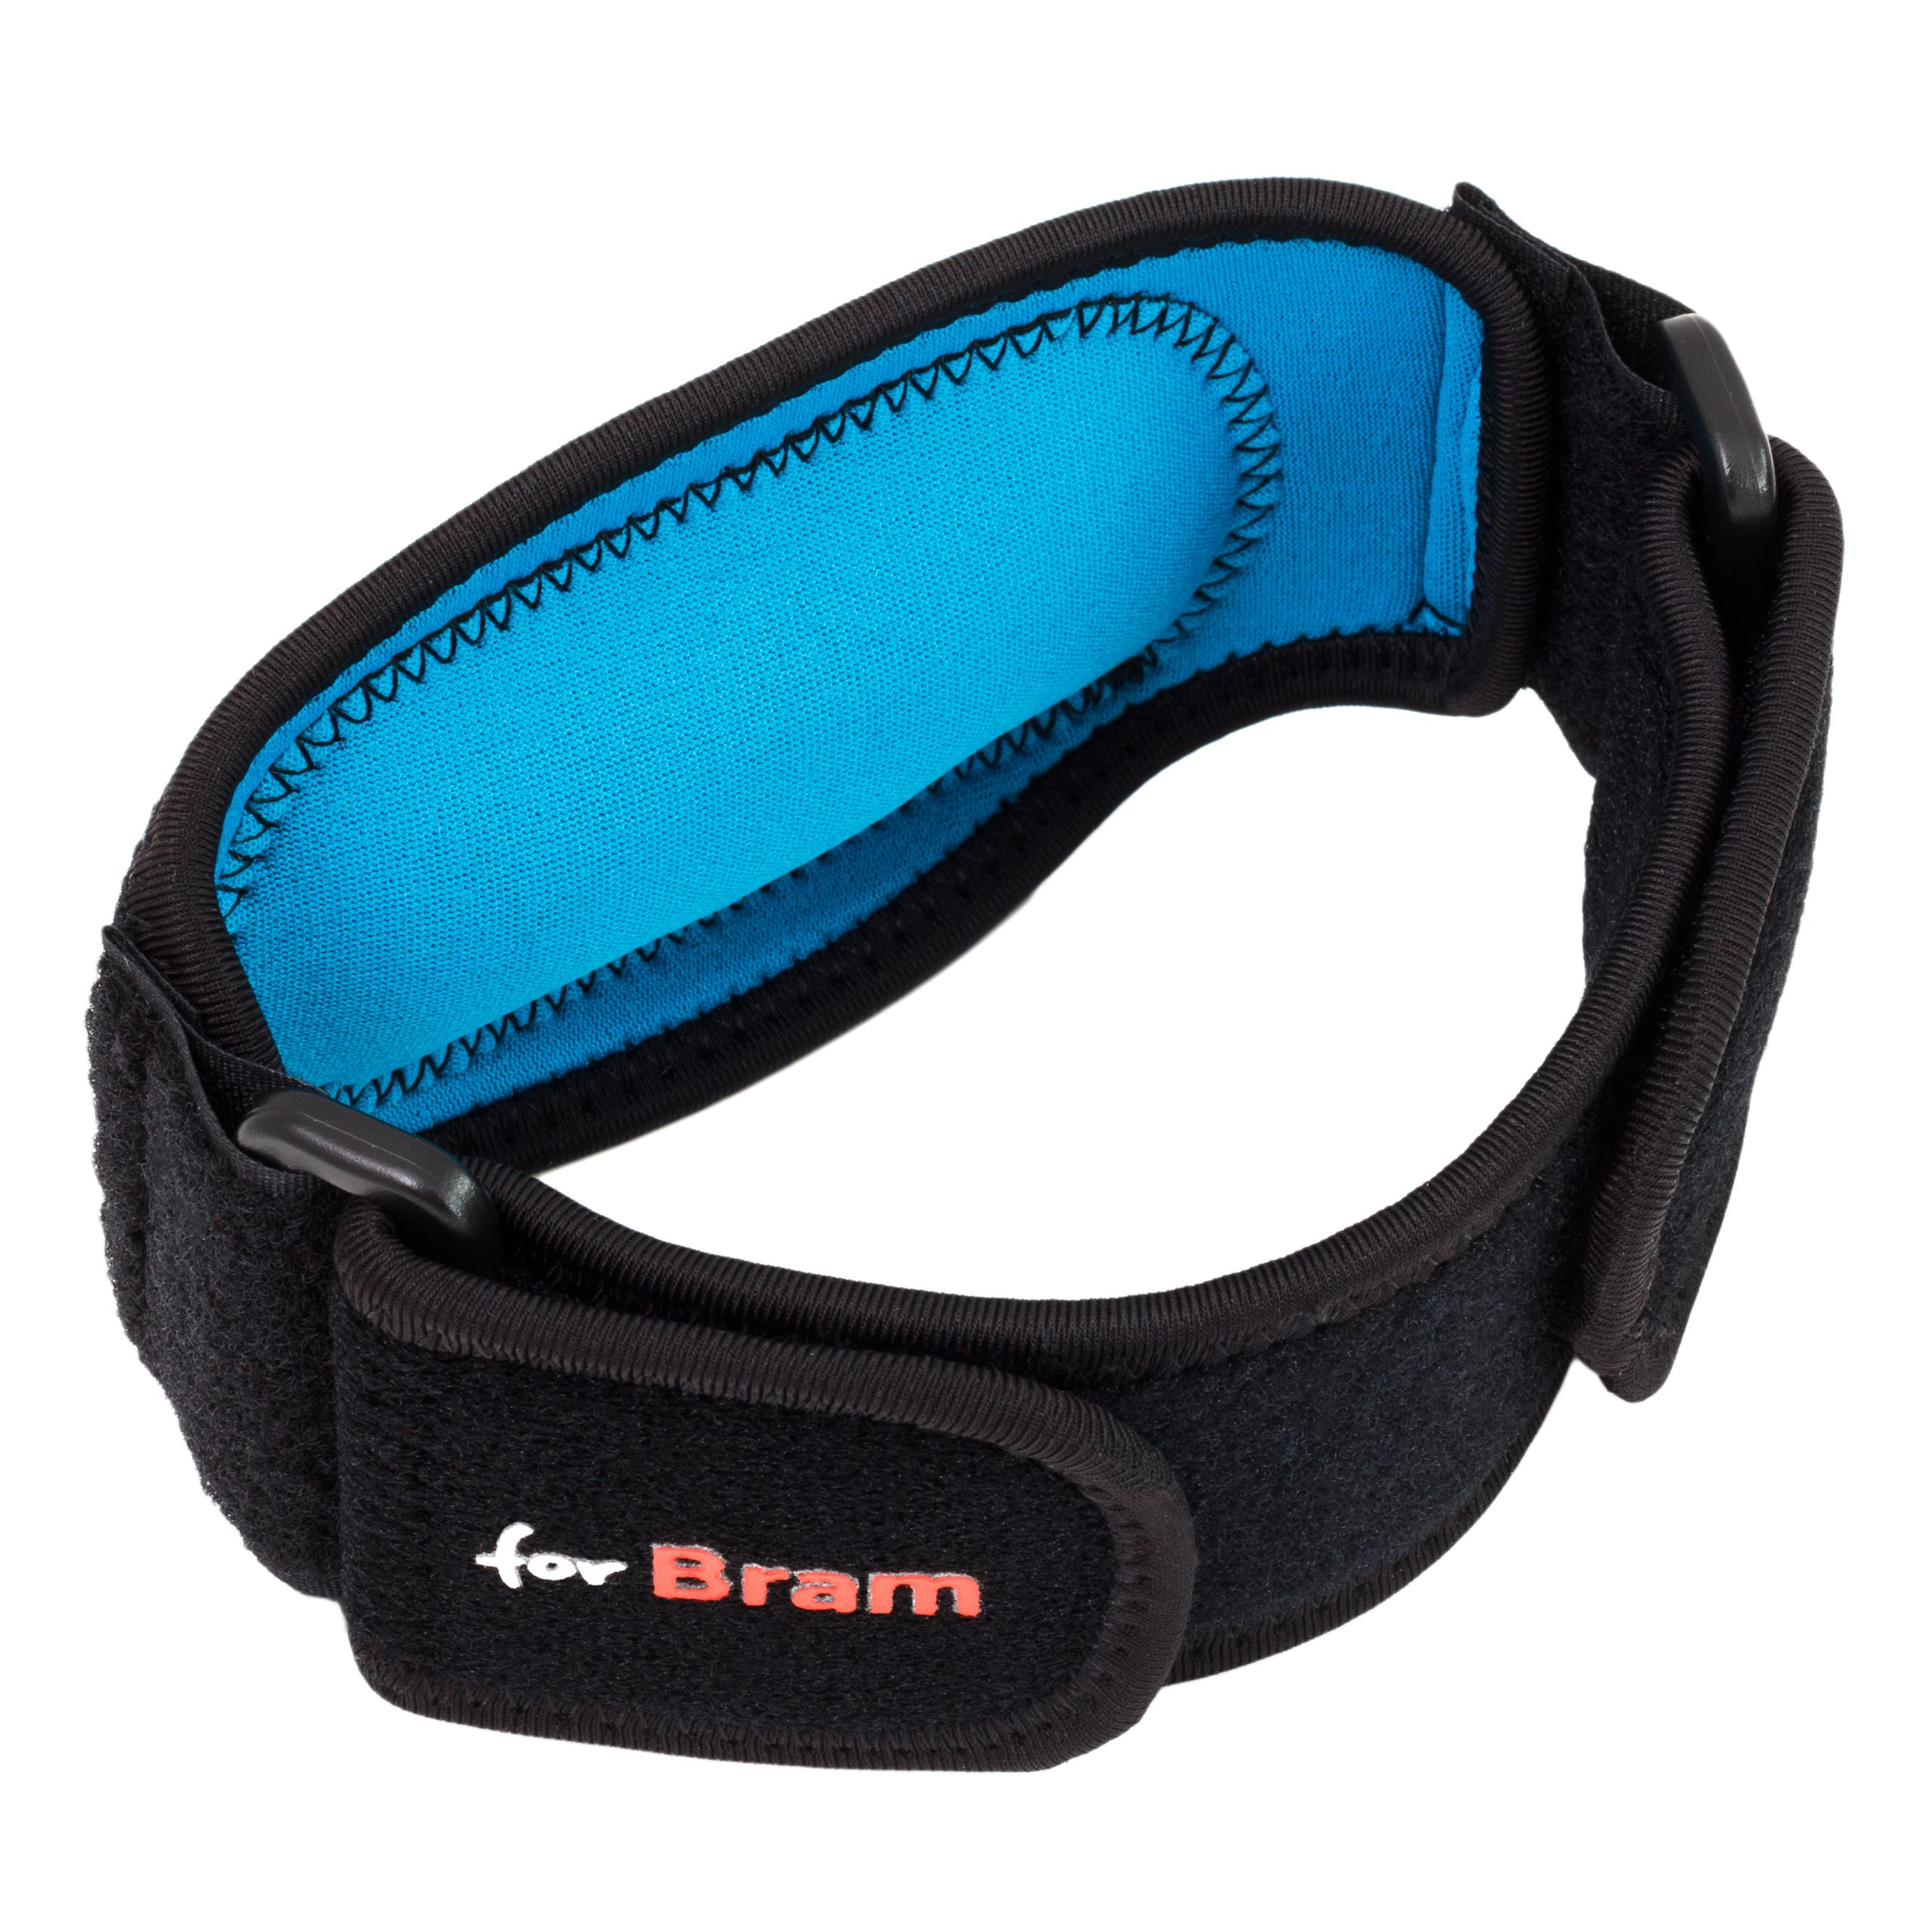 How to use our Tennis elbow brace - Golf elbow brace